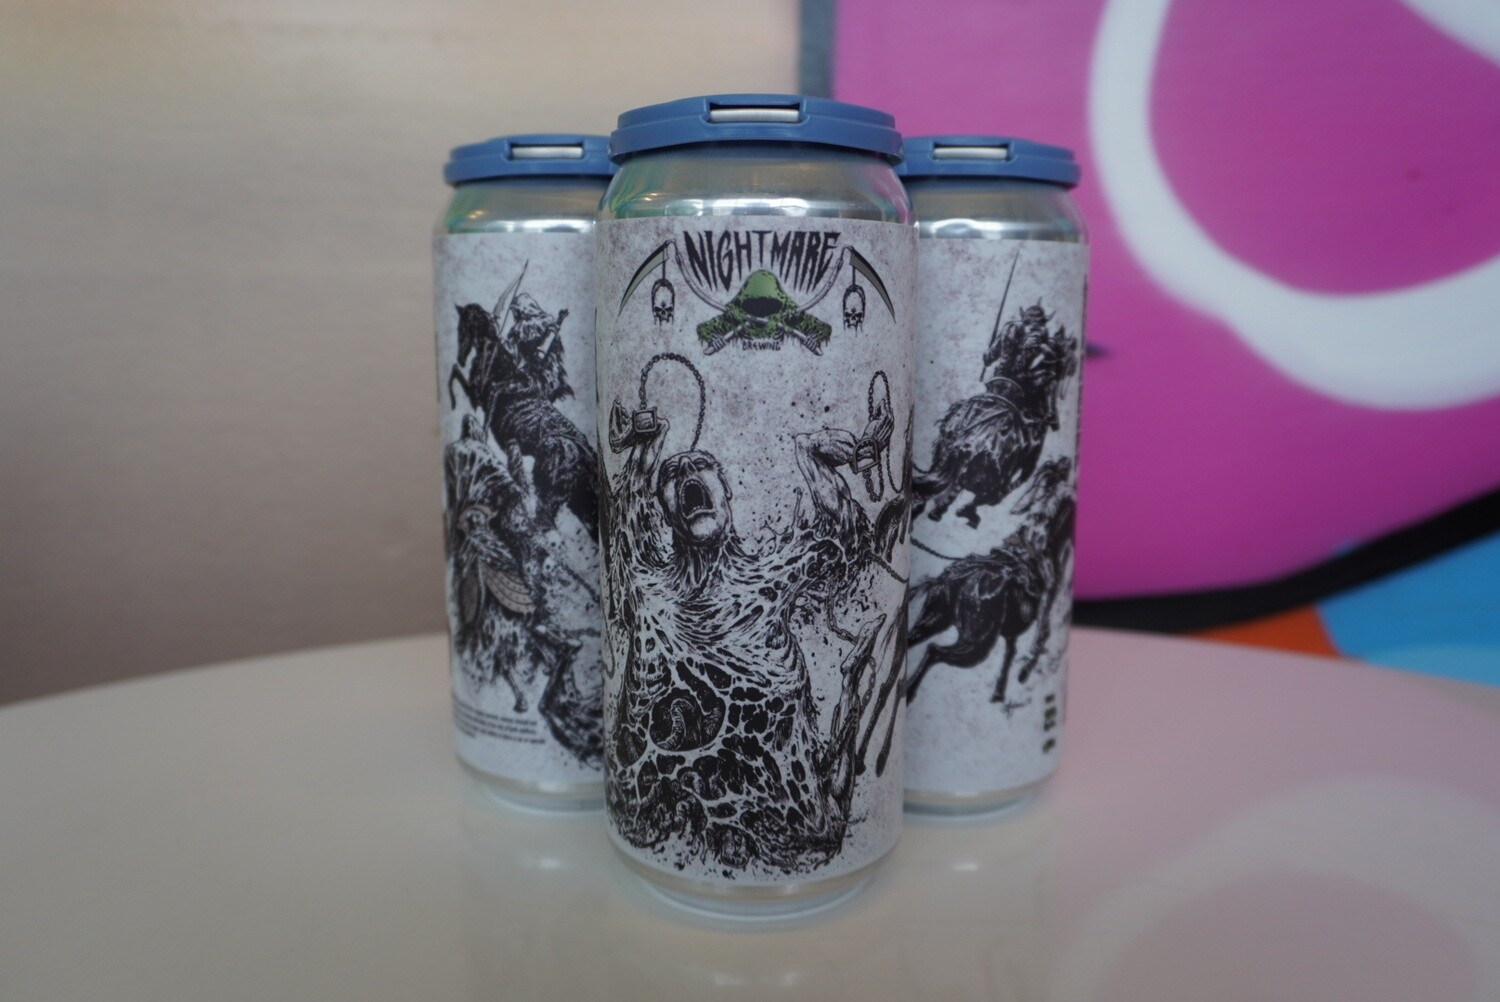 Nightmare Brewing - Drawn & Quartered - Double IPA - 10% ABV - 4 Pack